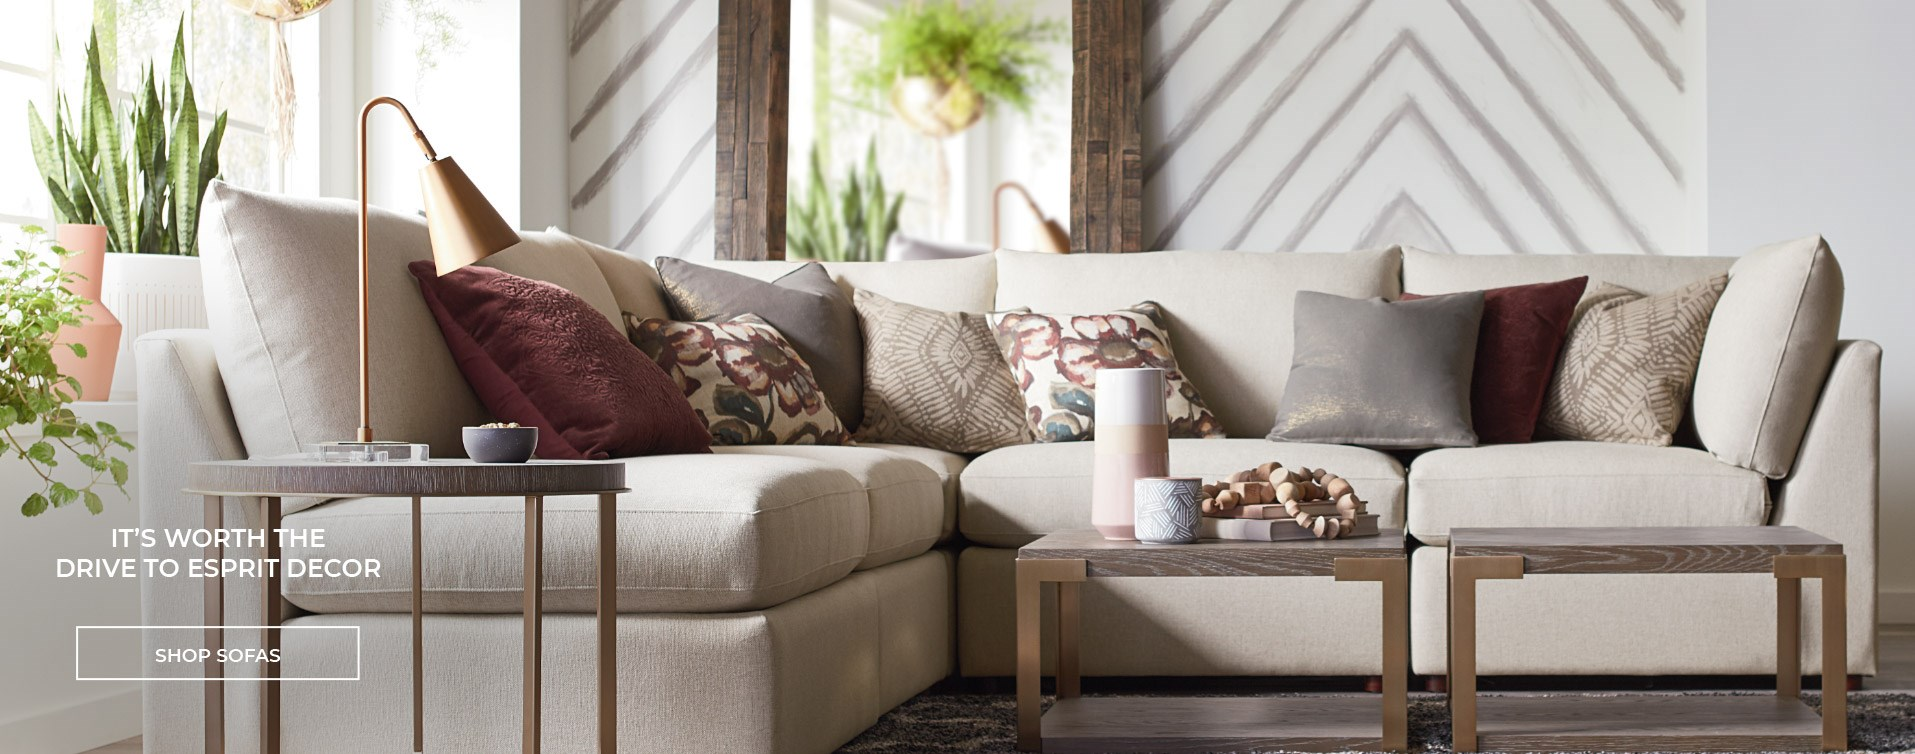 Esprit Decor Home Furnishings | Chesapeake, Virginia Beach ...